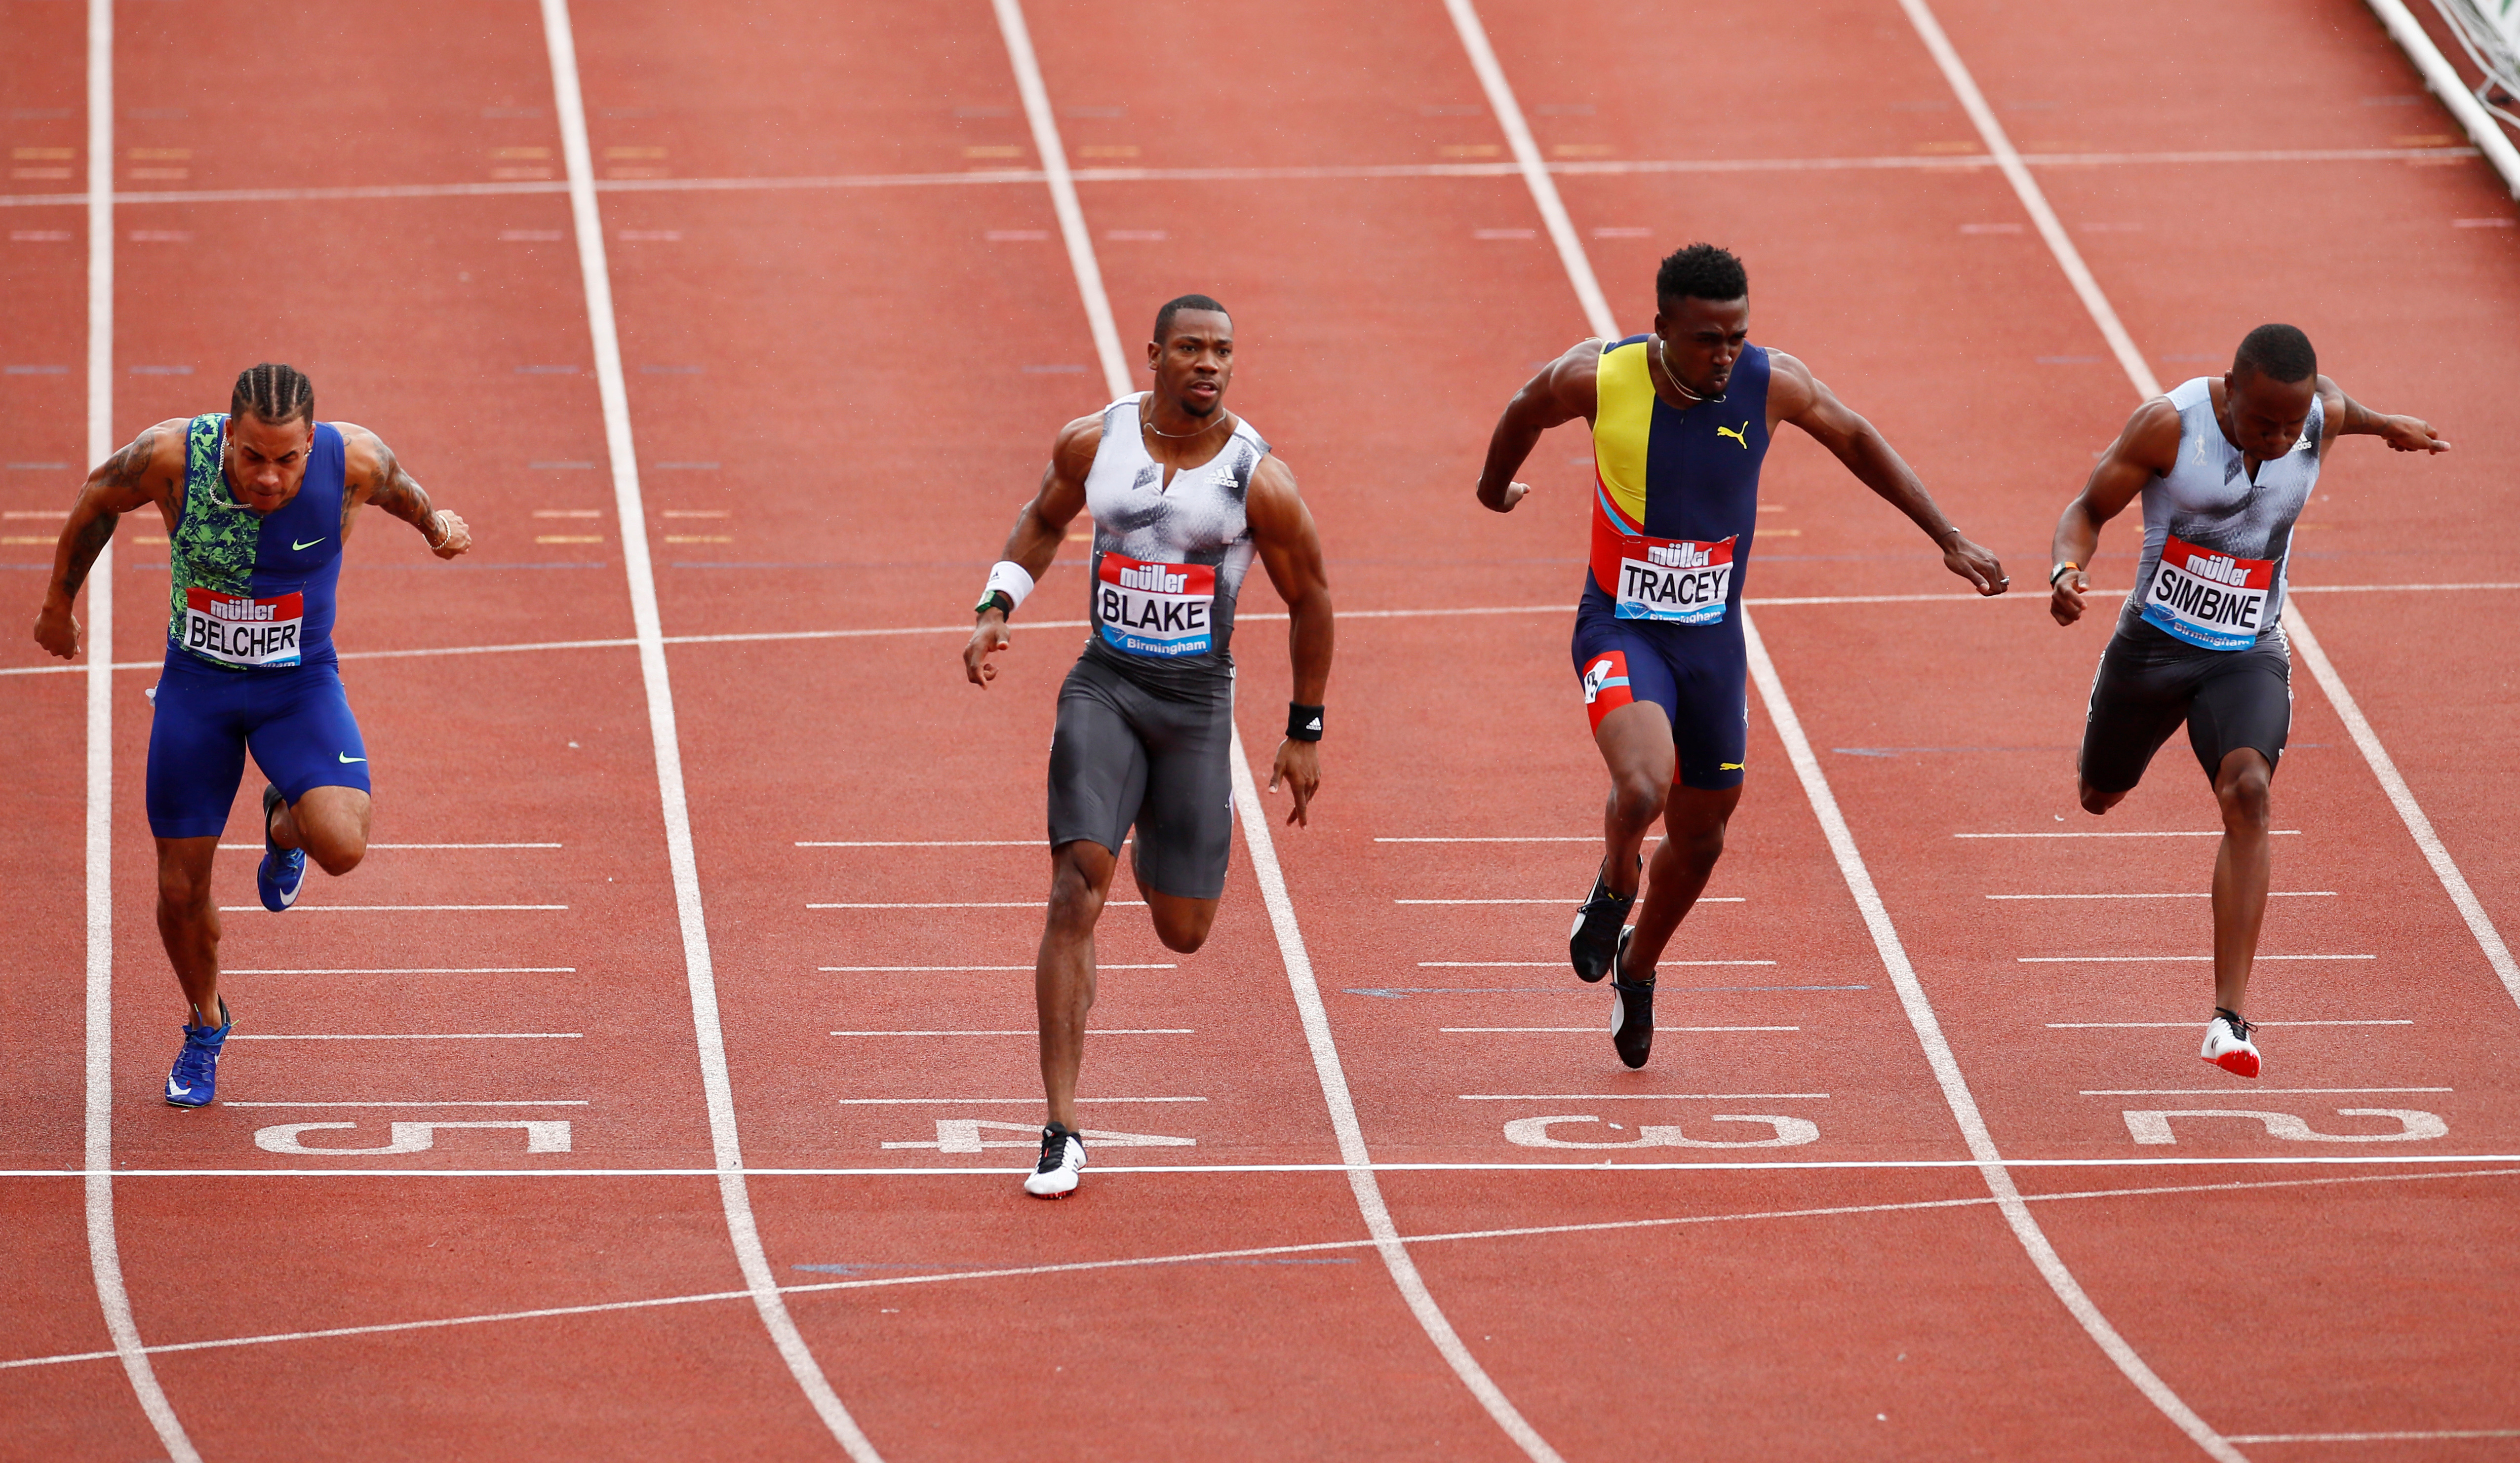 Athletics: Blake blasts back with 100m Diamond League win, eyes world champs